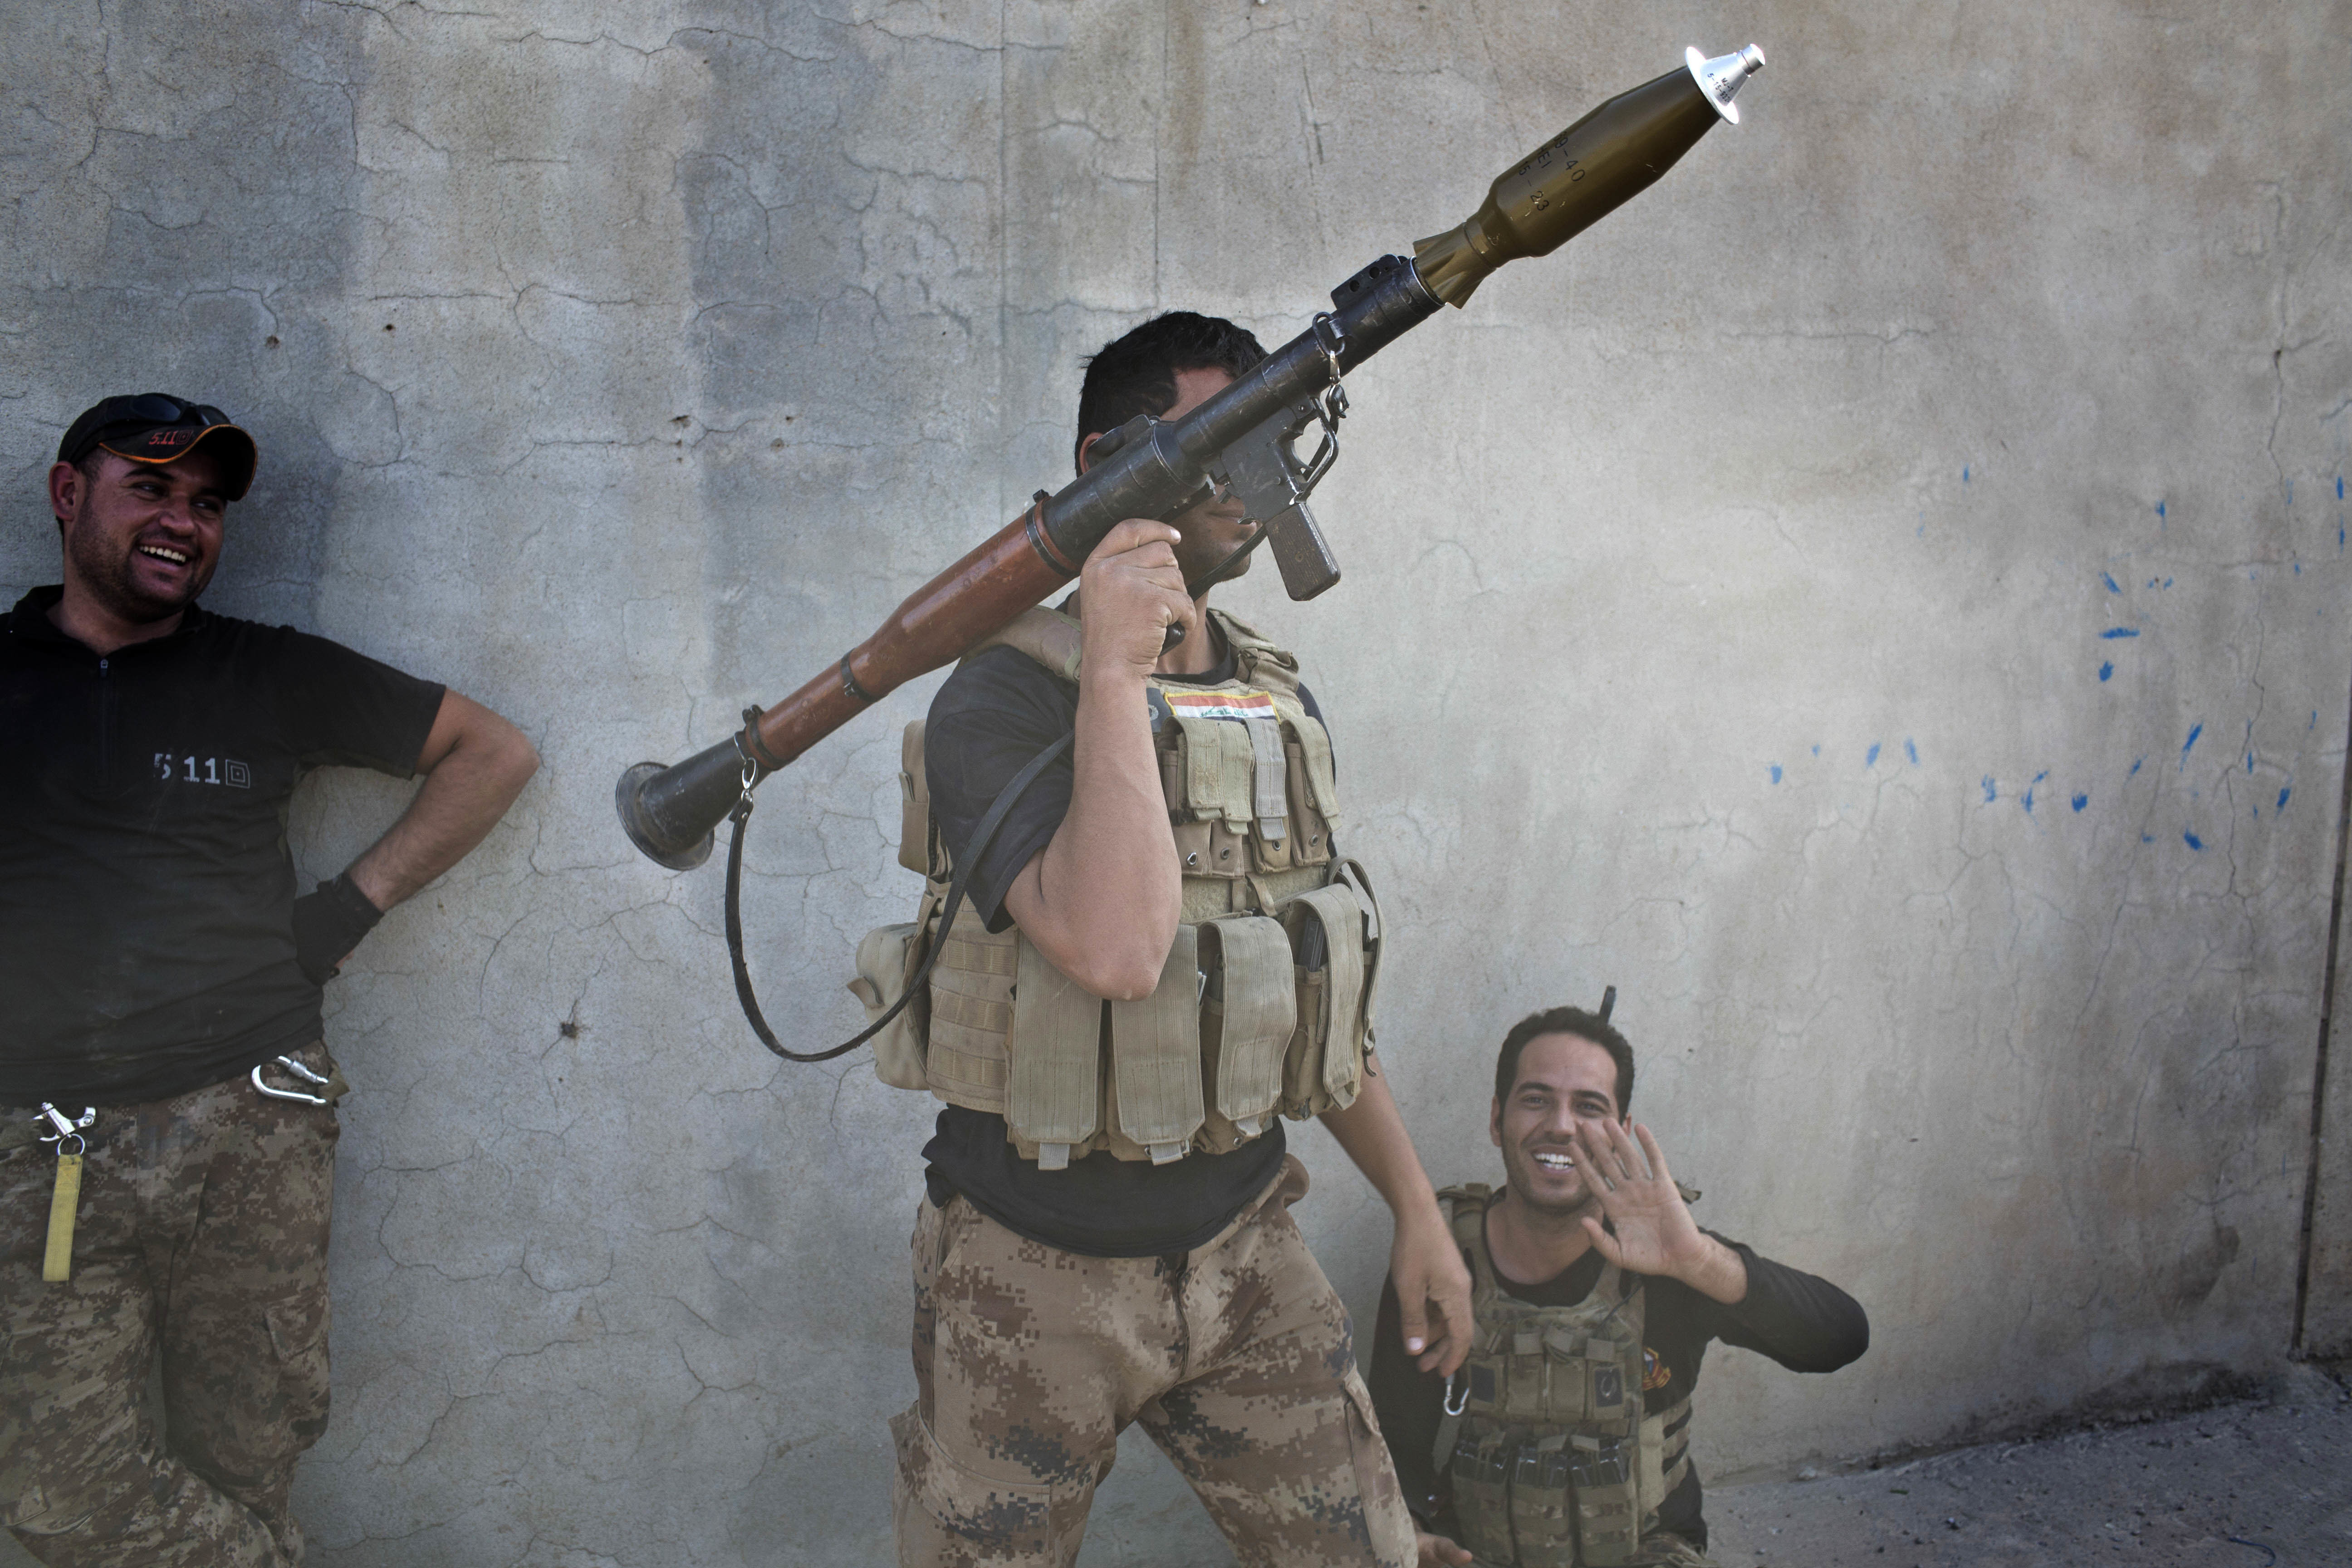 An Iraqi special forces soldier holds a rocket propelled grenade launcher in Bazwaya, some 8 kilometers from the center of Mosul, Iraq, Monday, Oct. 31, 2016. Iraqi special forces stood poised to enter Mosul in an offensive to drive out Islamic State militants after sweeping into the last village on the city's eastern edge Monday while fending off suicide car bombs without losing a soldier. (AP Photo/Marko Drobnjakovic)